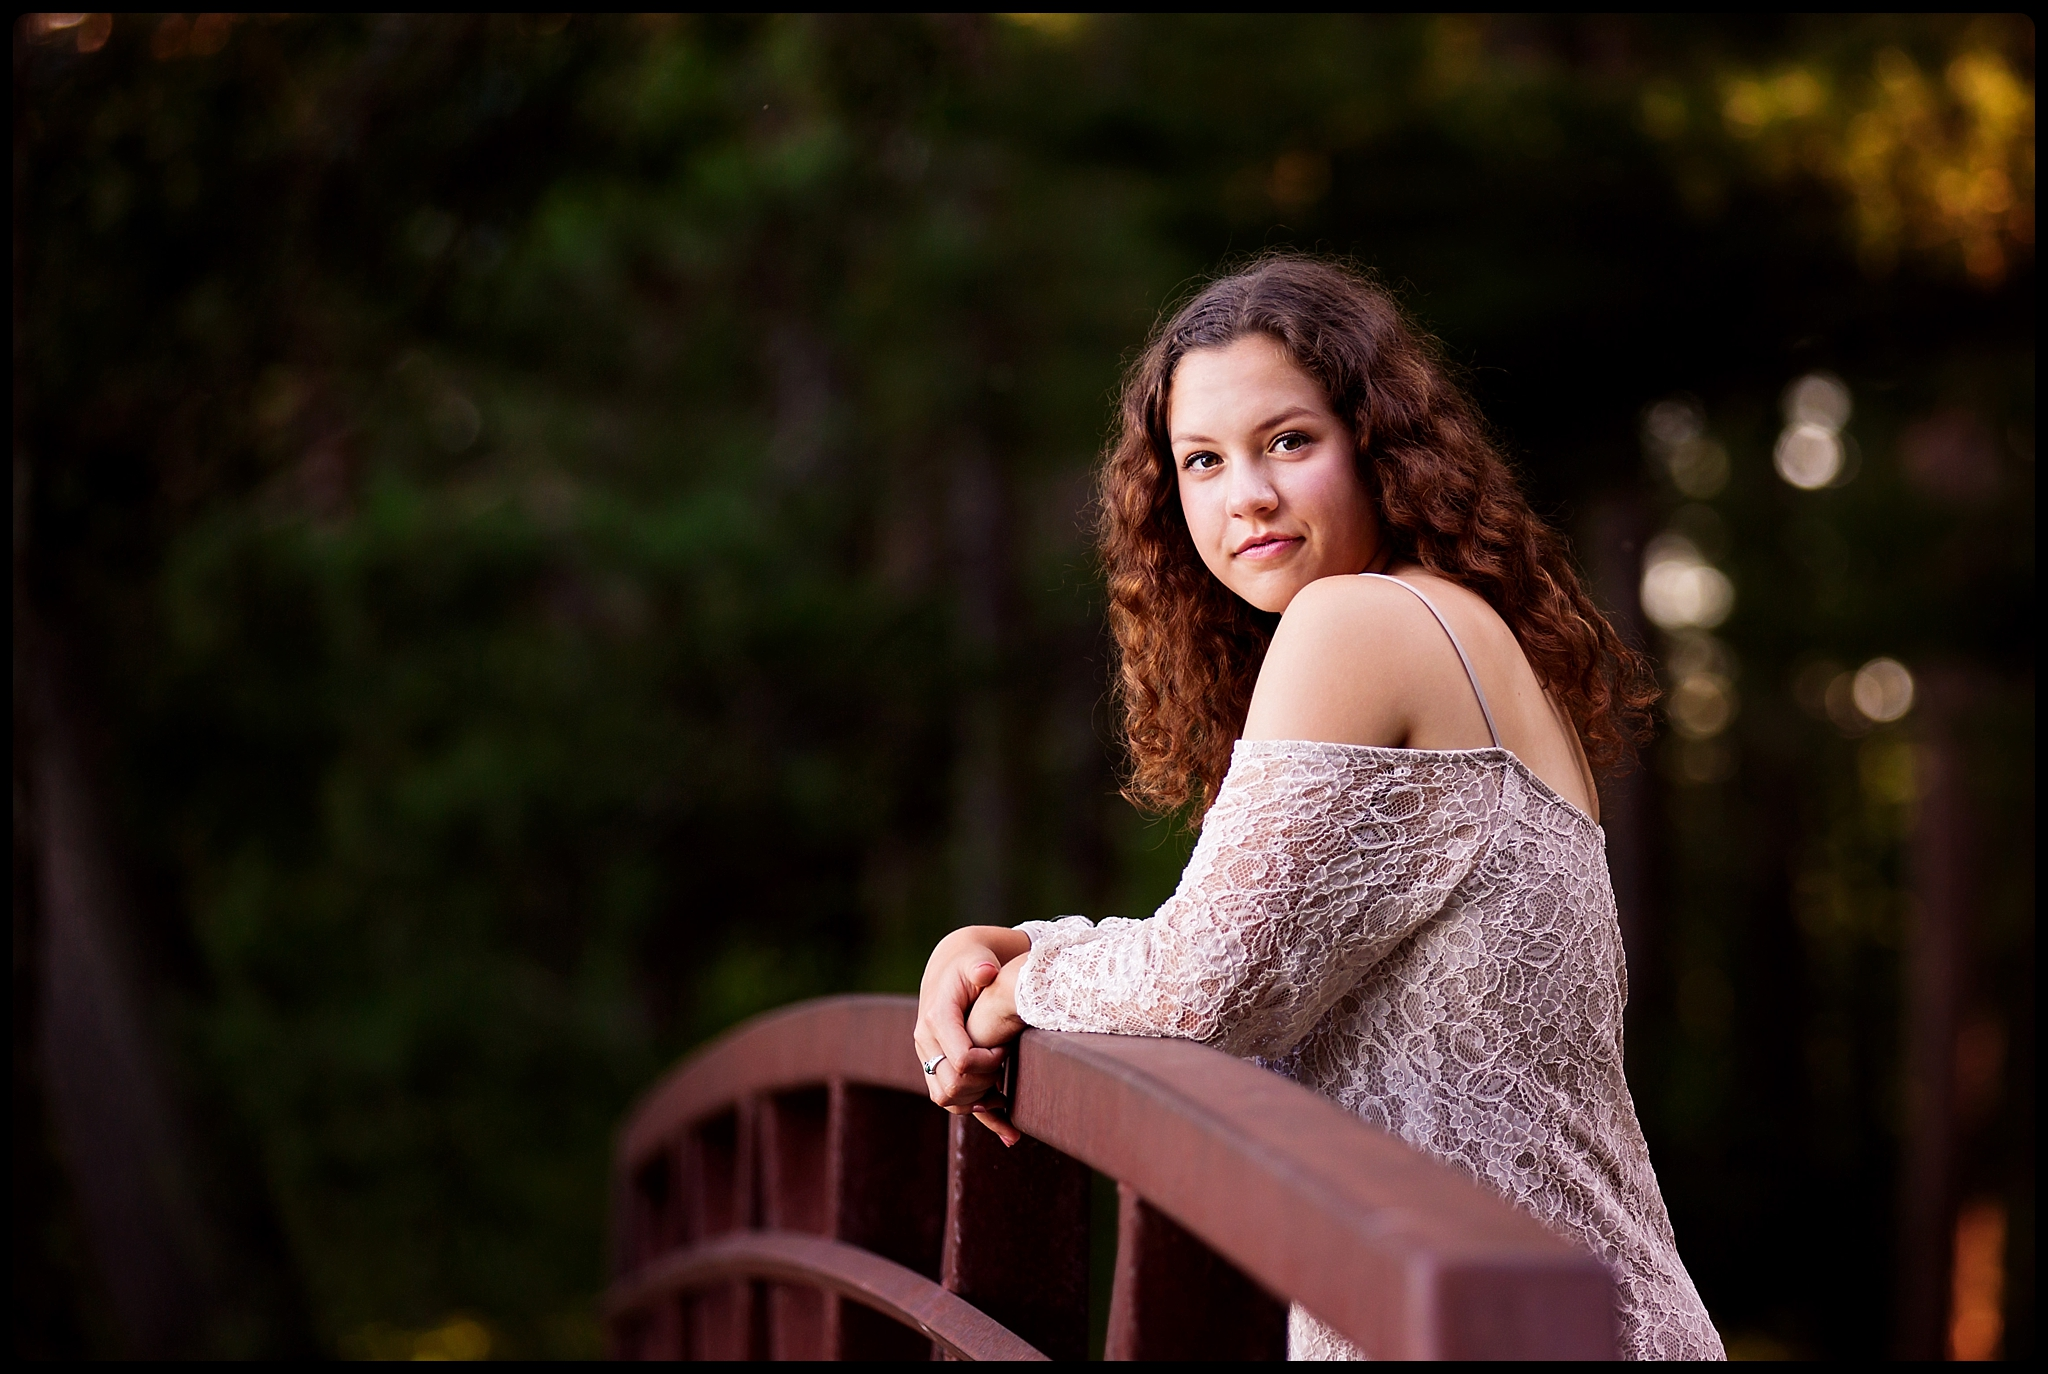 wisconsin-rapids-senior-pictures-Bobbi-K-Photography_0007.jpg